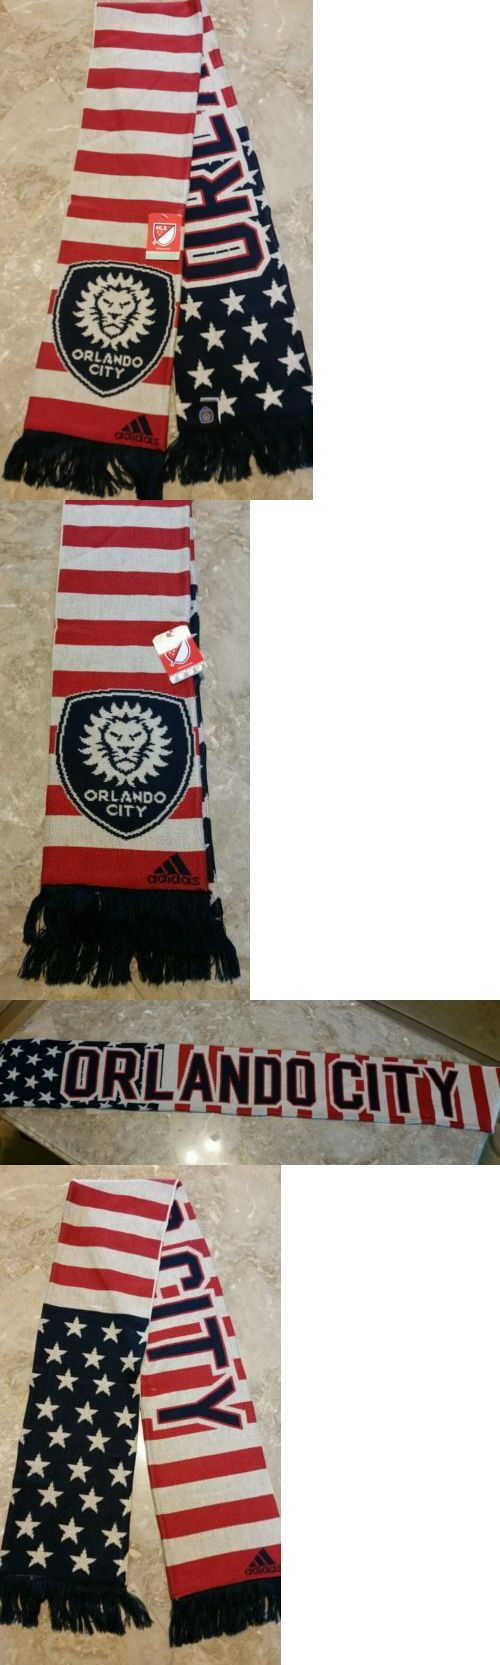 Soccer-MLS 2888: Nwt Orlando City Soccer Club 4Th Of July American Flag Usa Scarf Ocsc New Adidas -> BUY IT NOW ONLY: $45 on eBay!